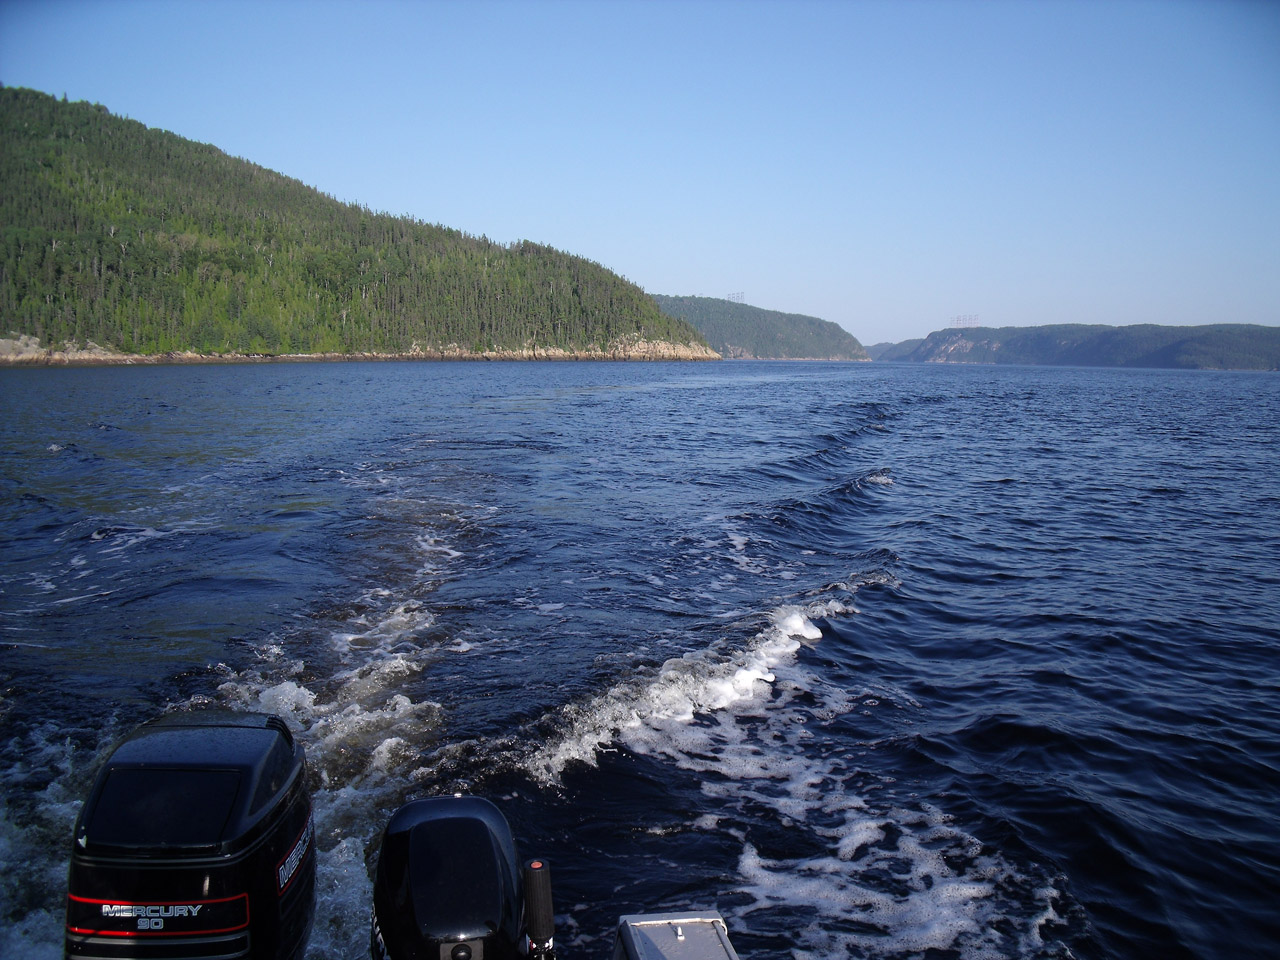 Driving up the Saguenay river